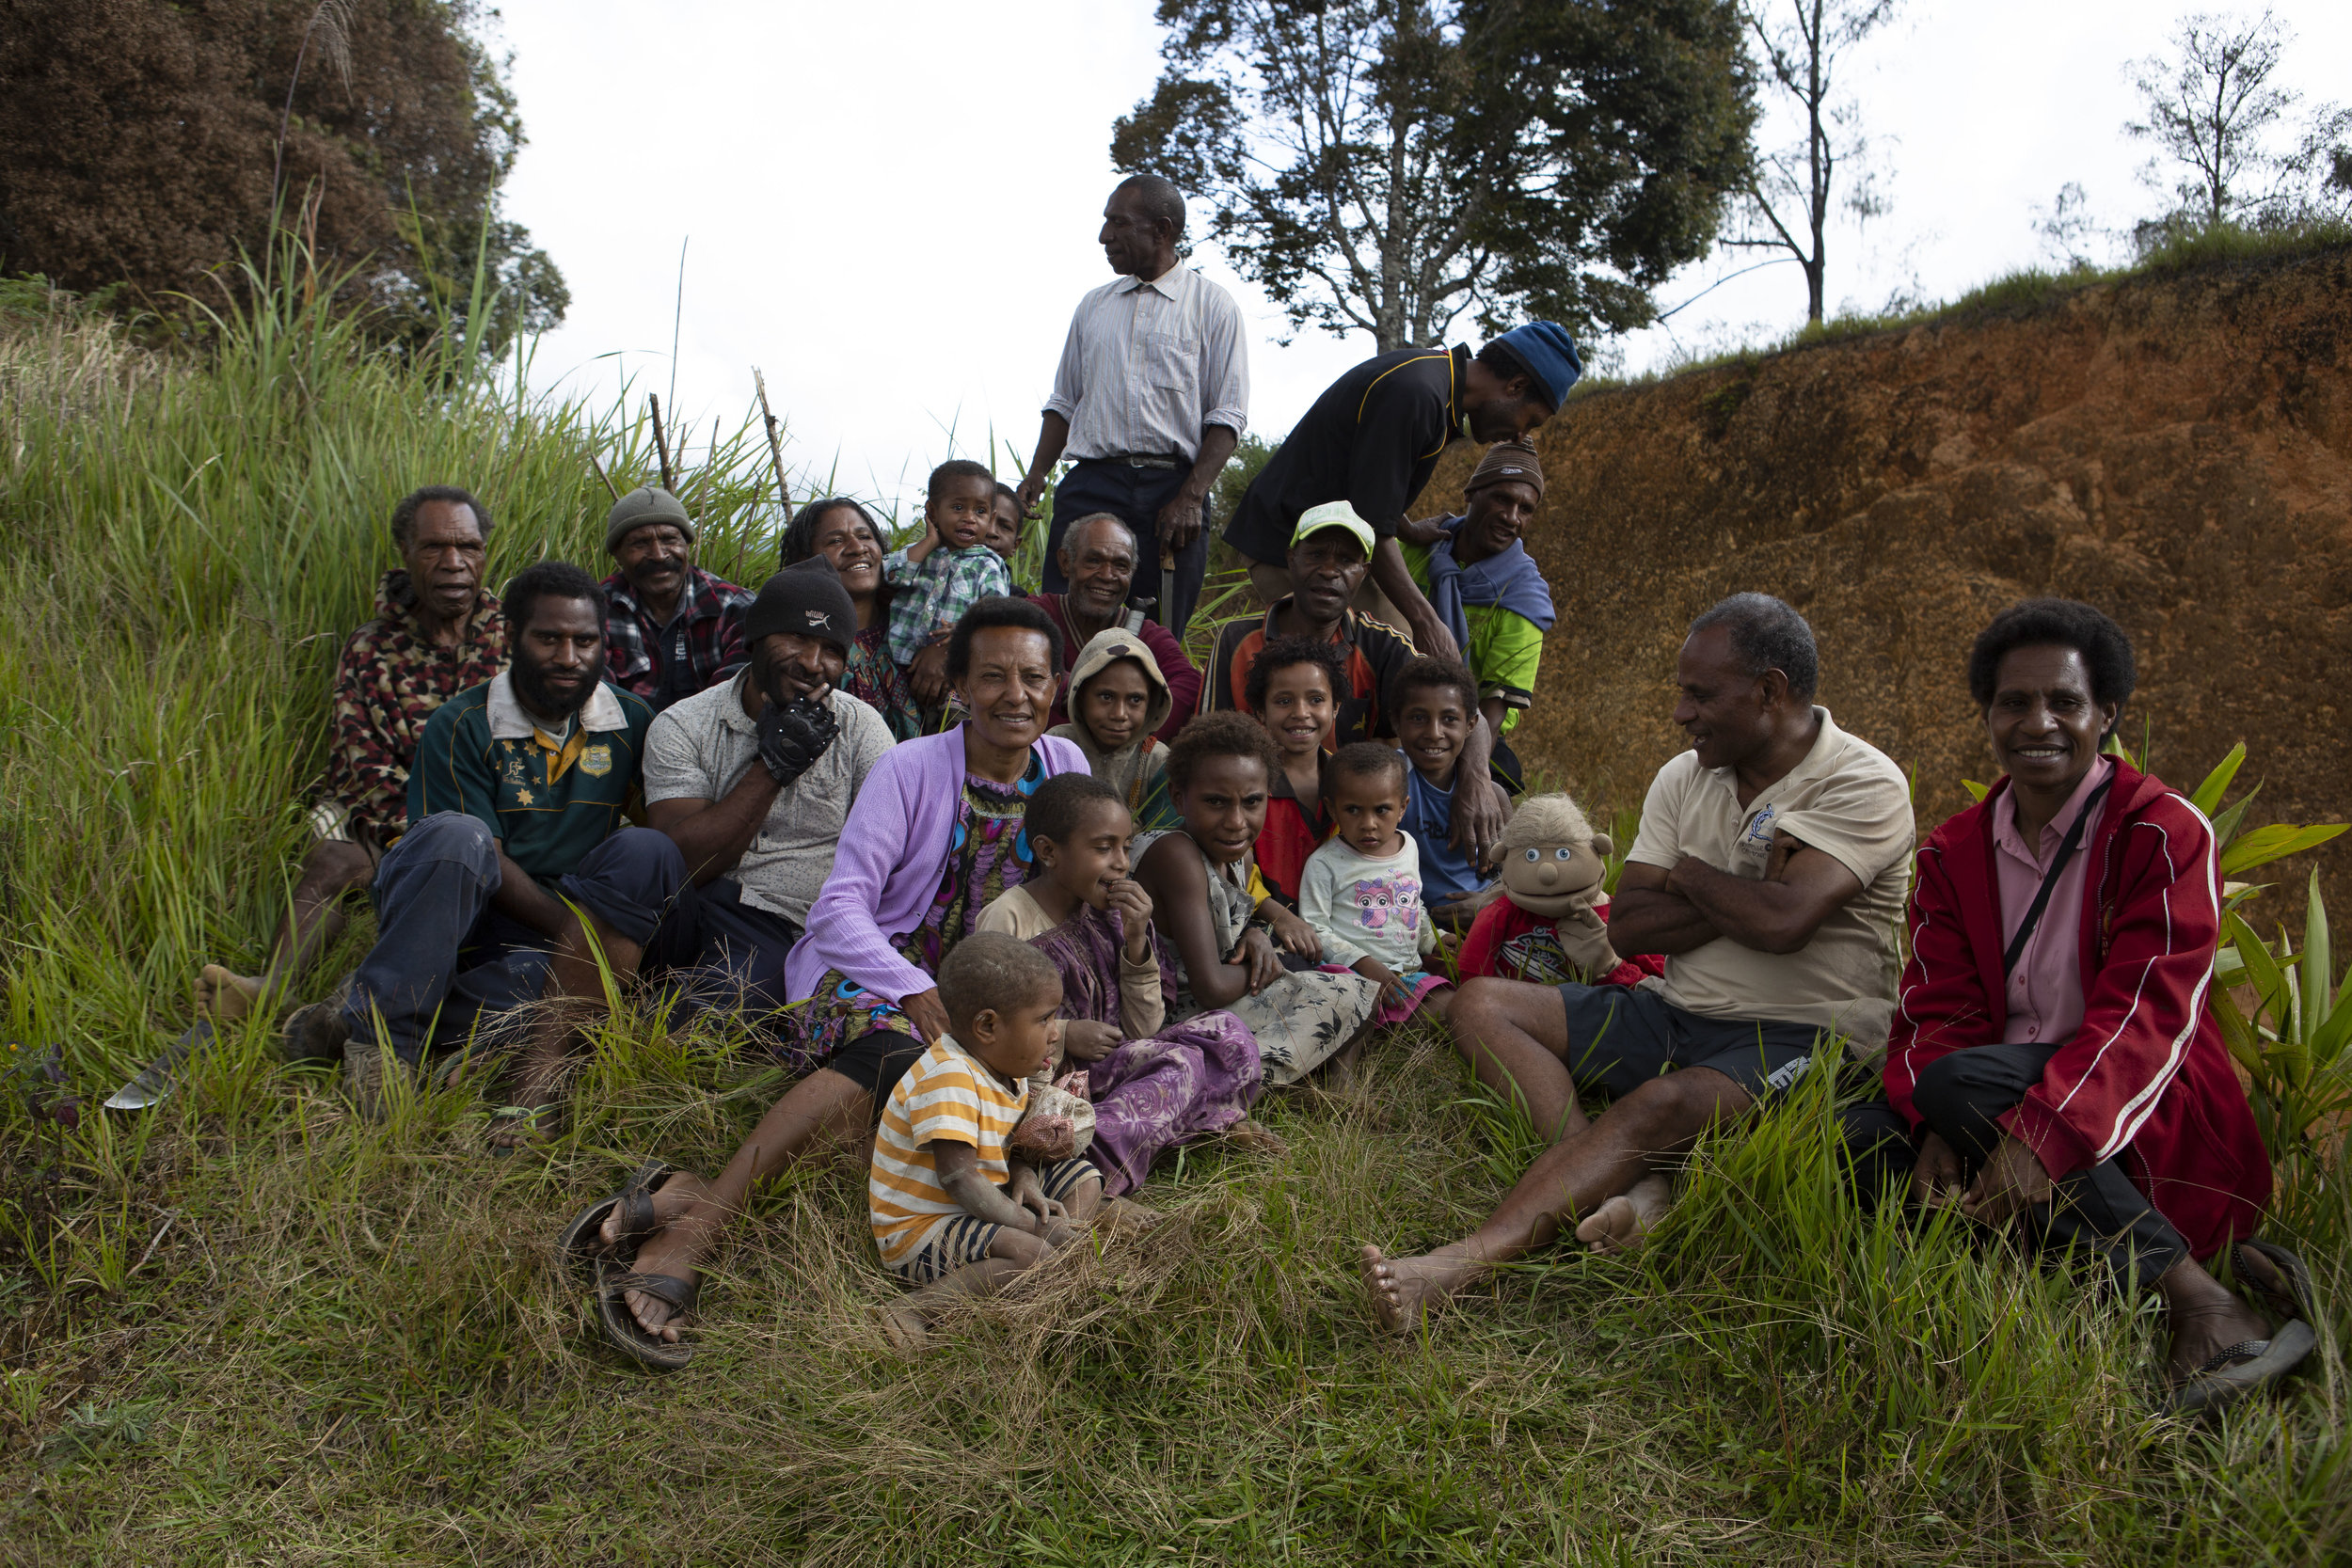 Shane with new friends in Papua New Guinea